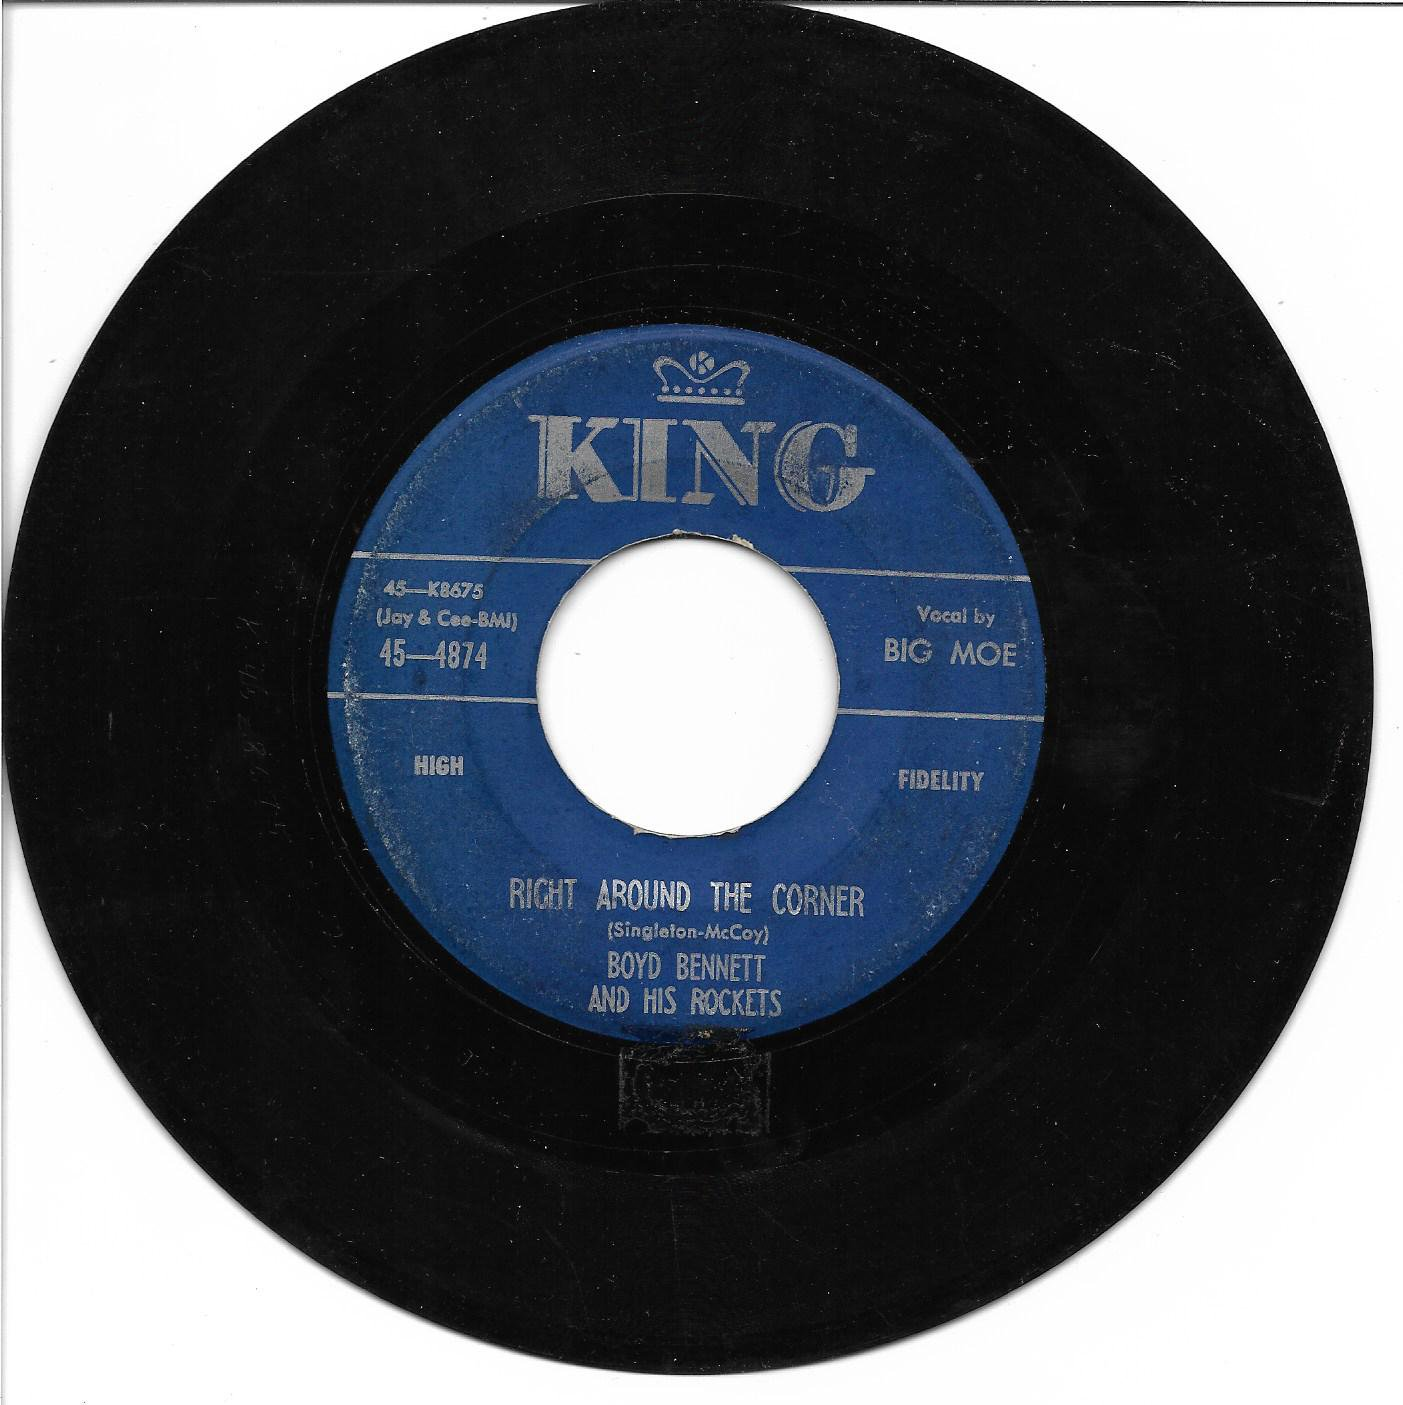 """Boyd Bennett: """"Right Around The Corner"""" / """"Partners For Life"""" - '56 - plays well!"""